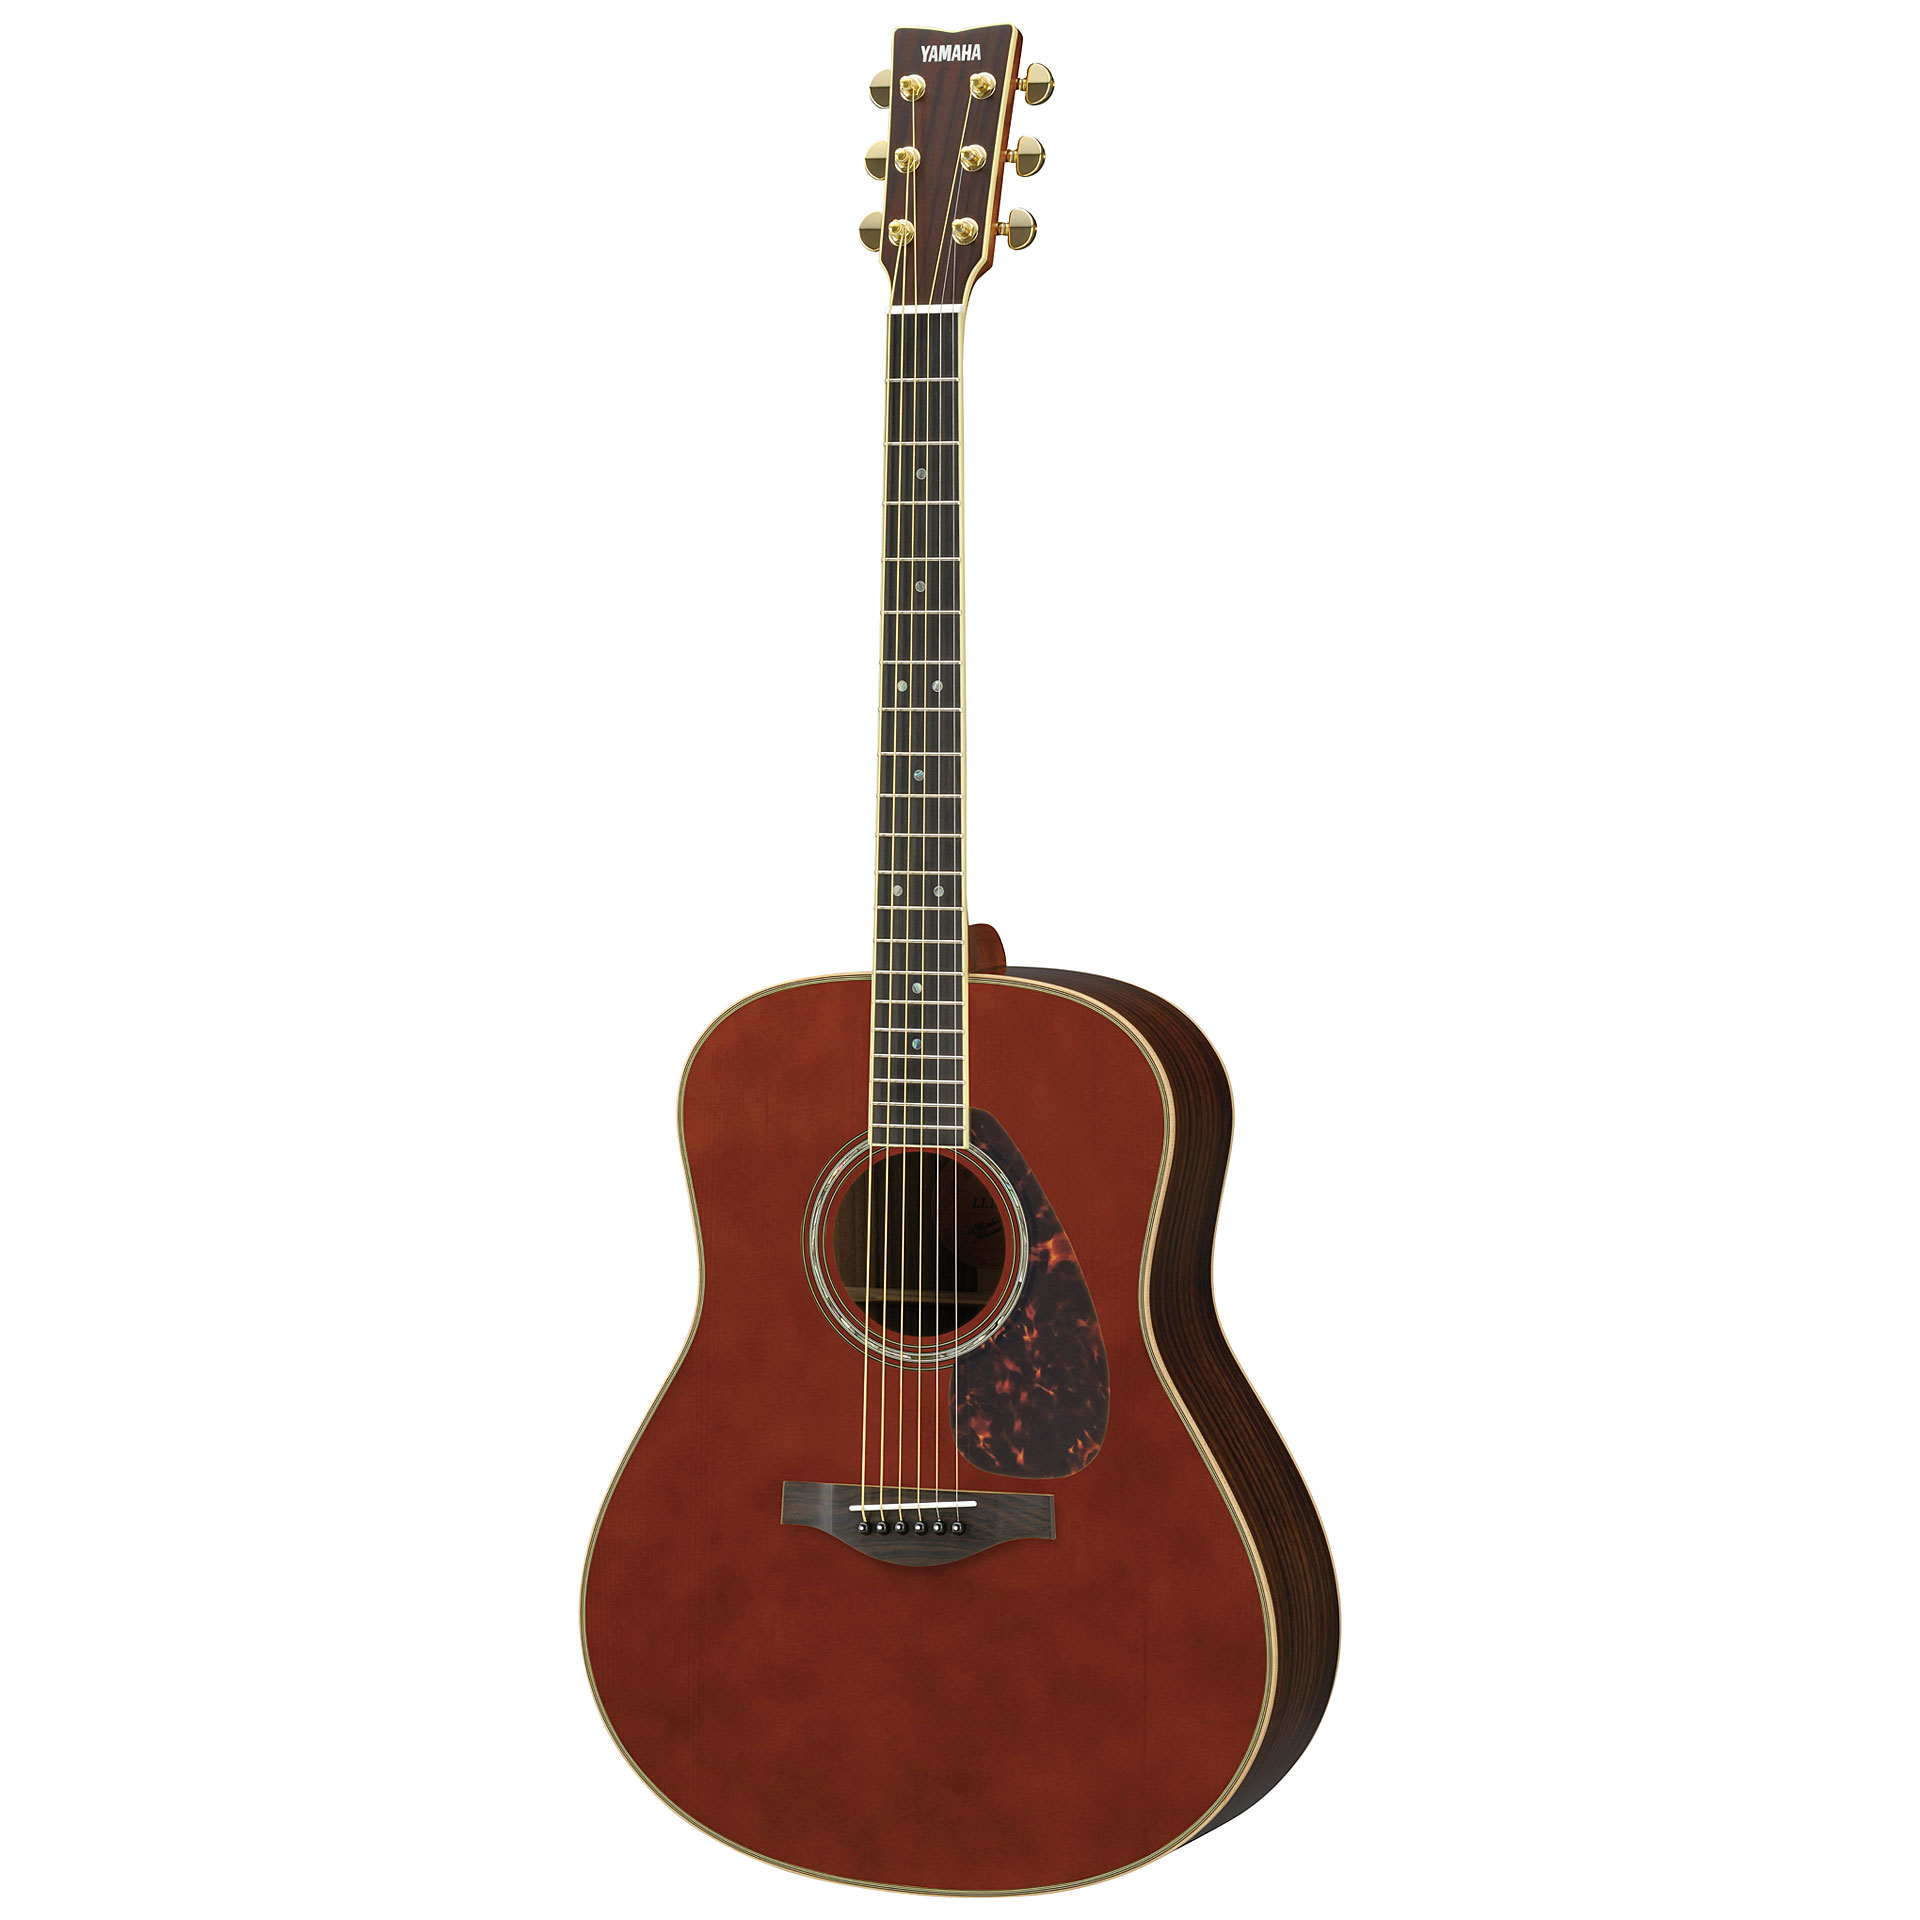 Yamaha ll16 are dt acoustic guitar for Yamaha ls16 vs ll16